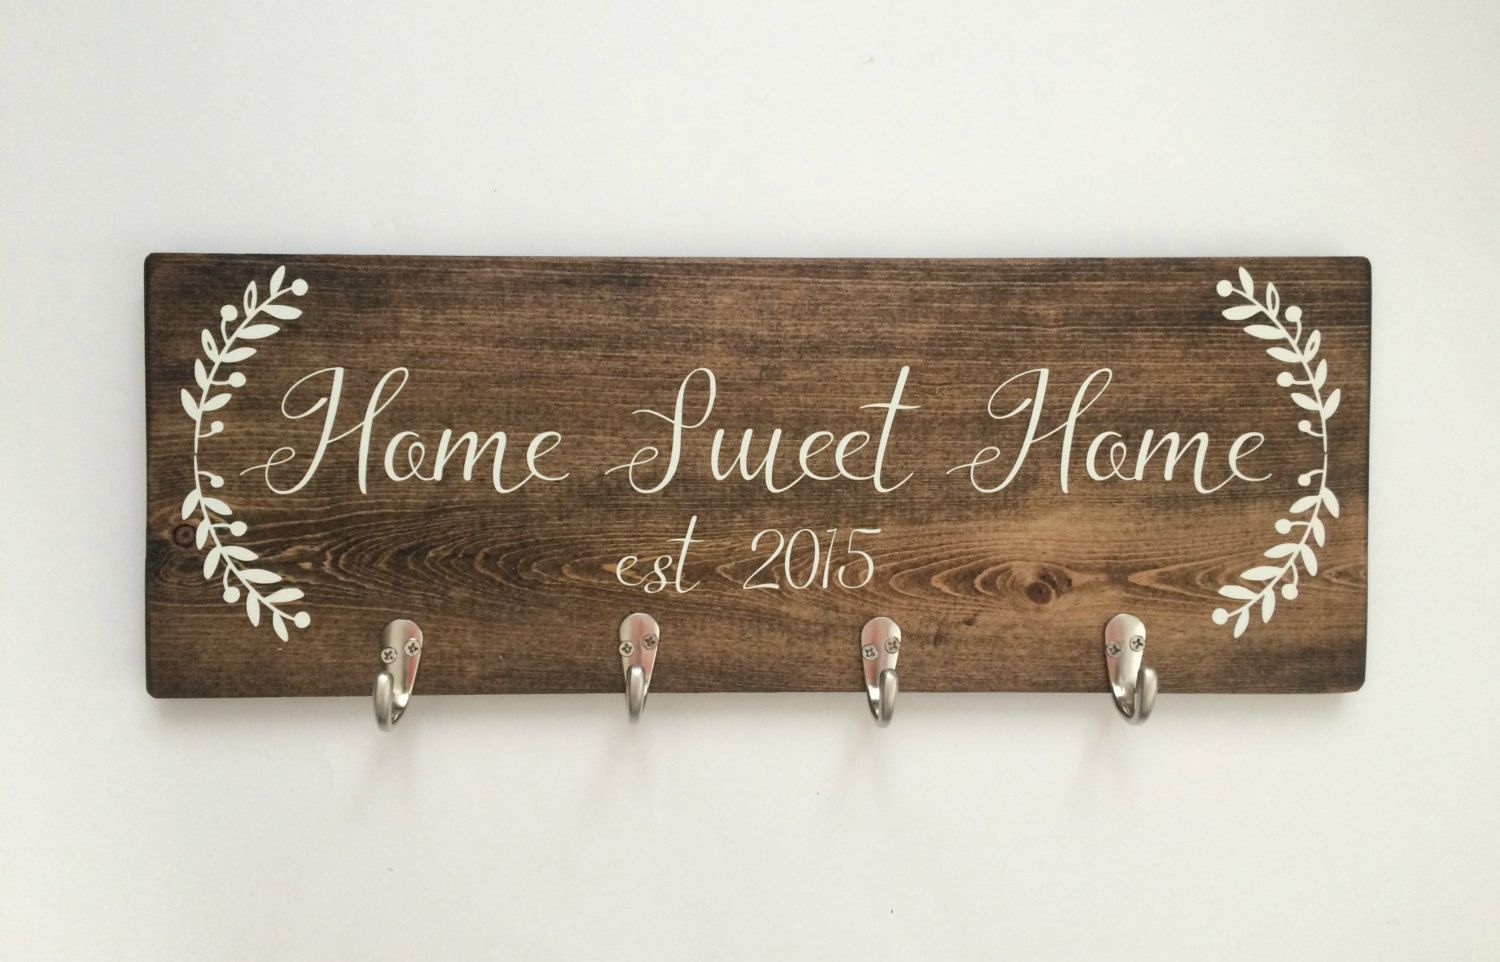 Home Sweet Home Wood Sign Key Holder For Wall Wood Key Holder New Home Housewarming Gift Home S Wood Signs For Home Wall Key Holder Personalized Wood Signs